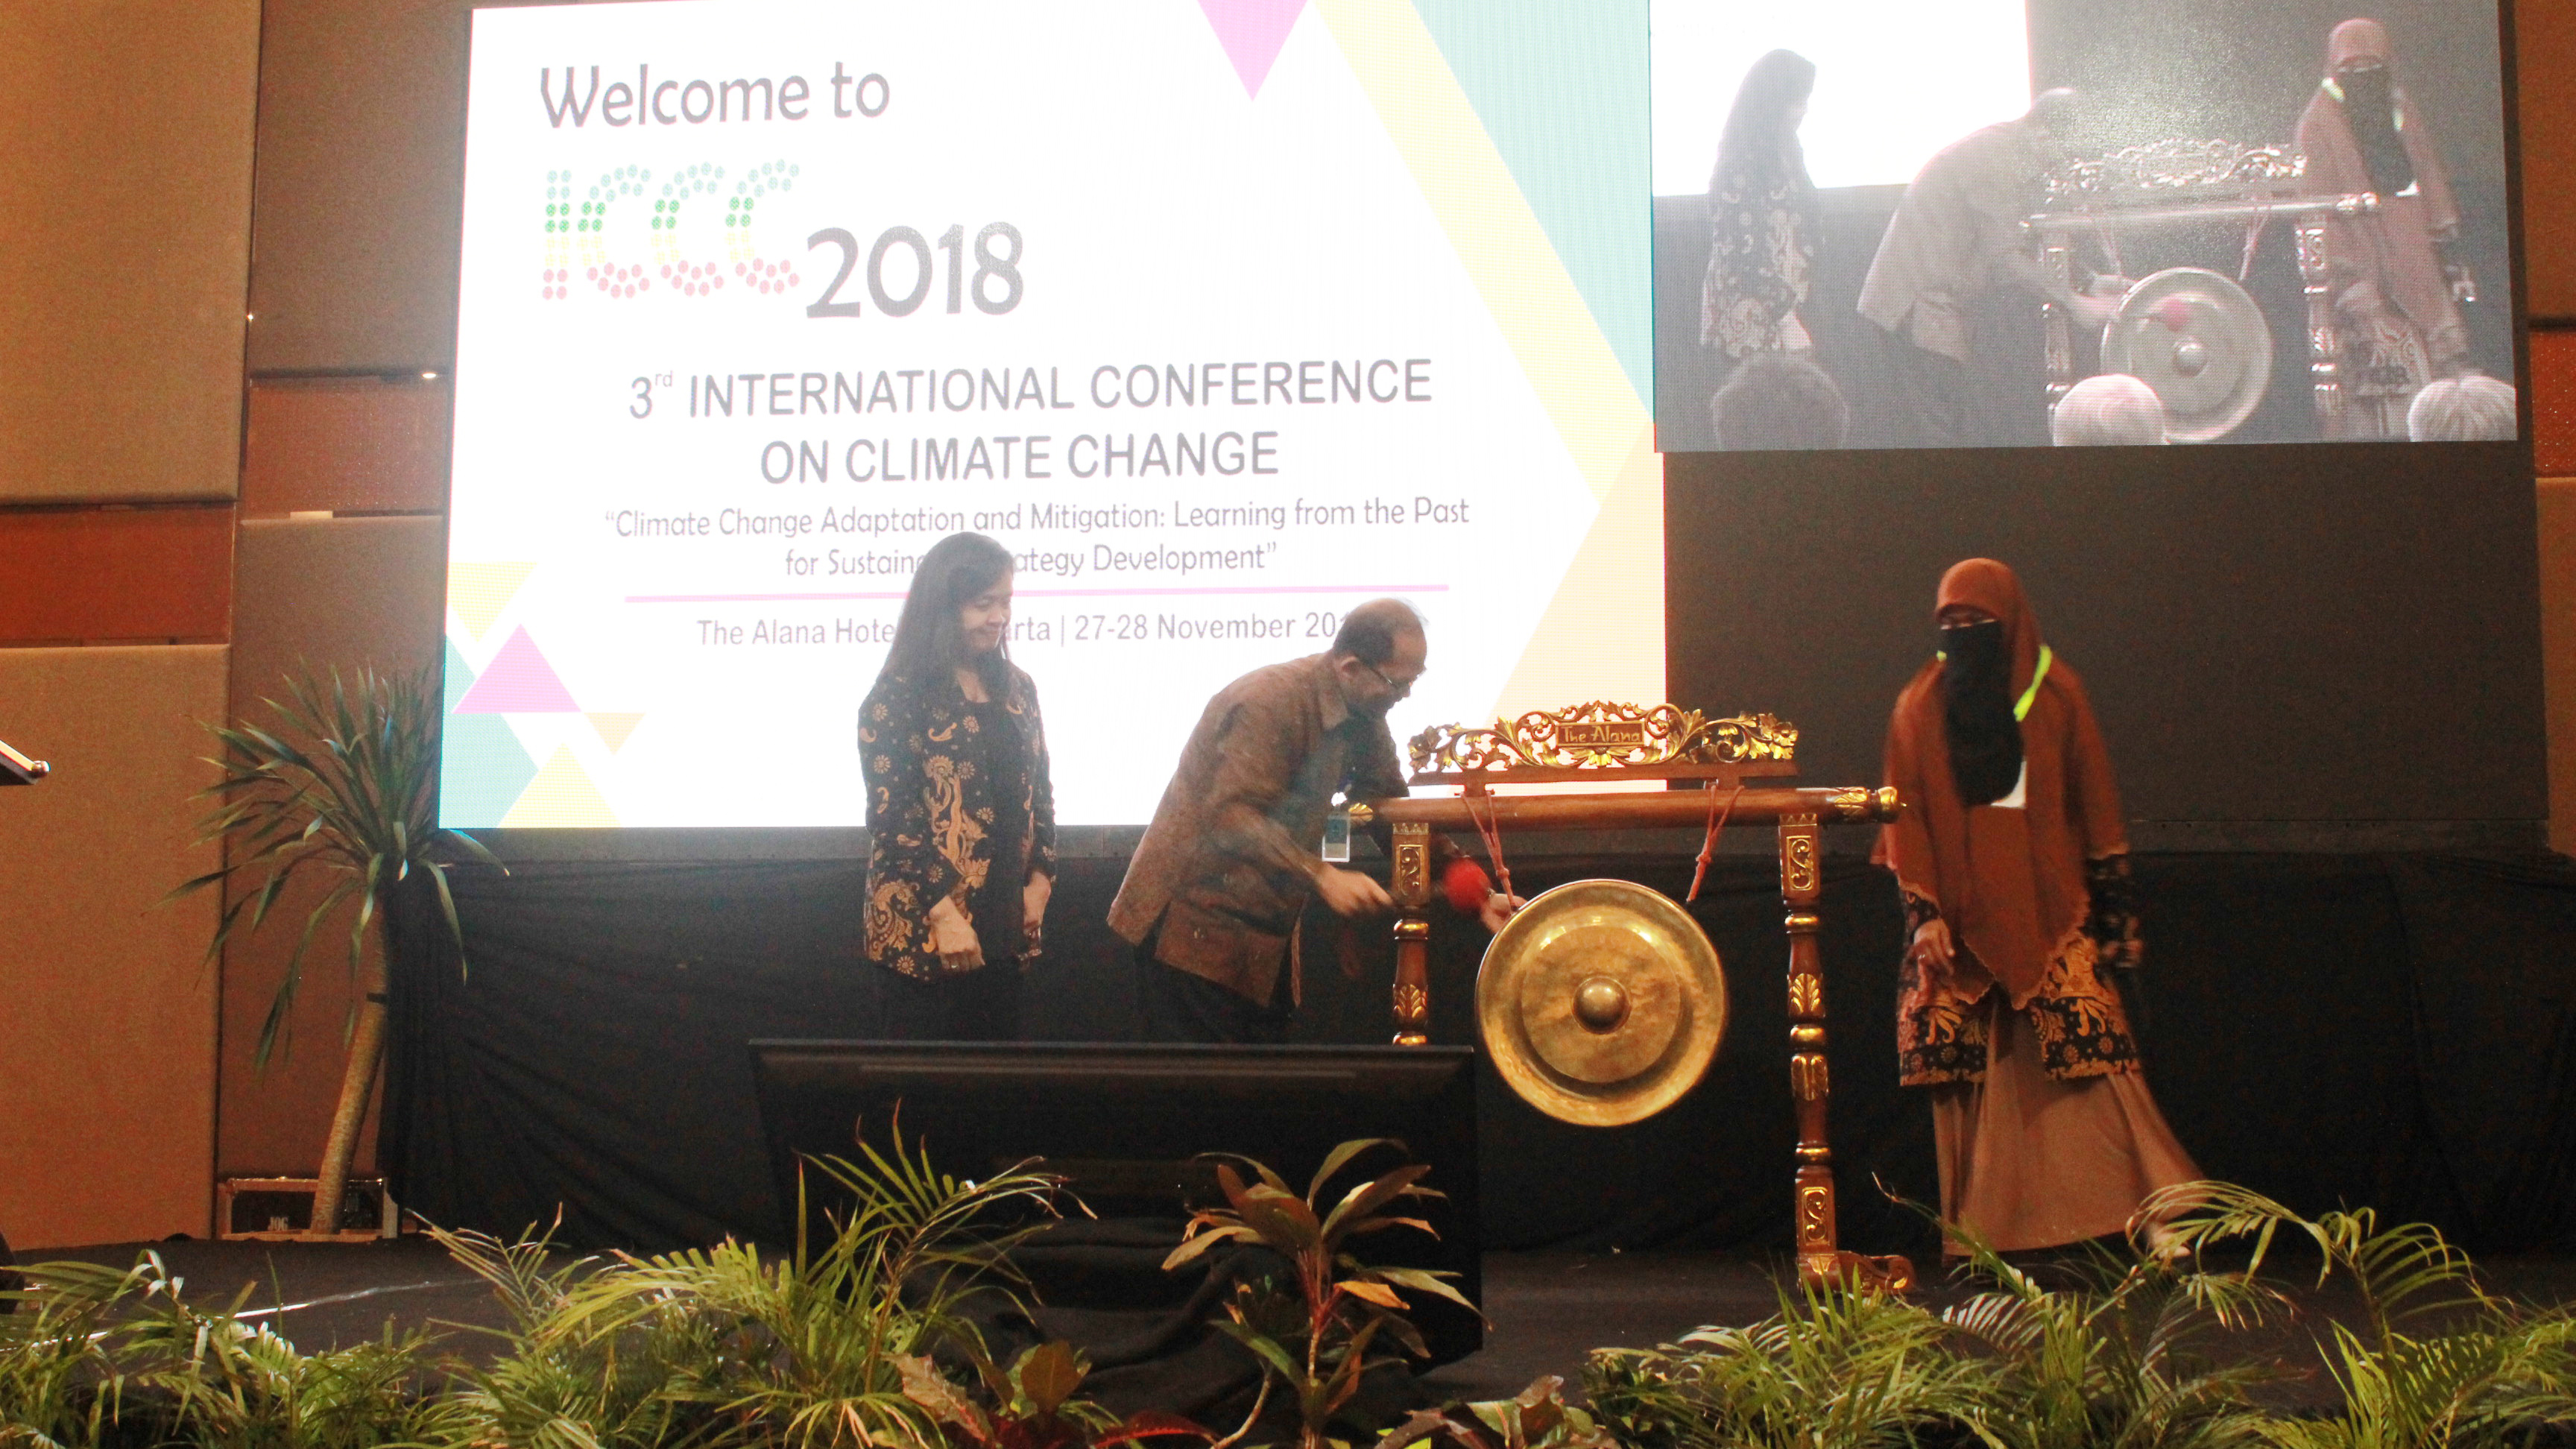 Beating the Gong by Vice Rector of UNS, indicates that ICCC 2018 has been officially opened.